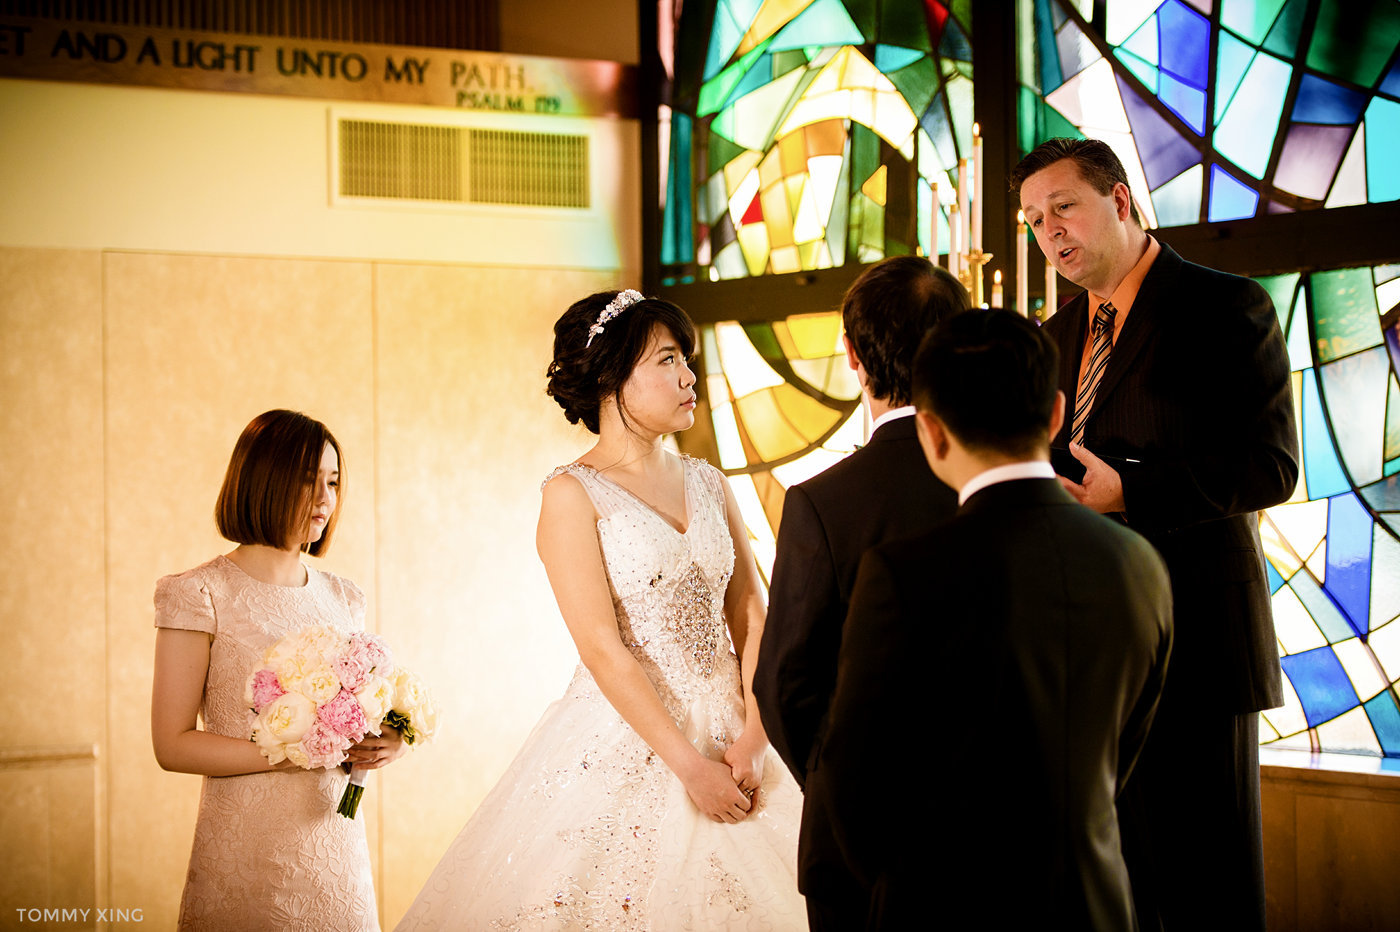 Qinglu Meng & Daozheng Chen Wedding Slideshow-137-E.JPG